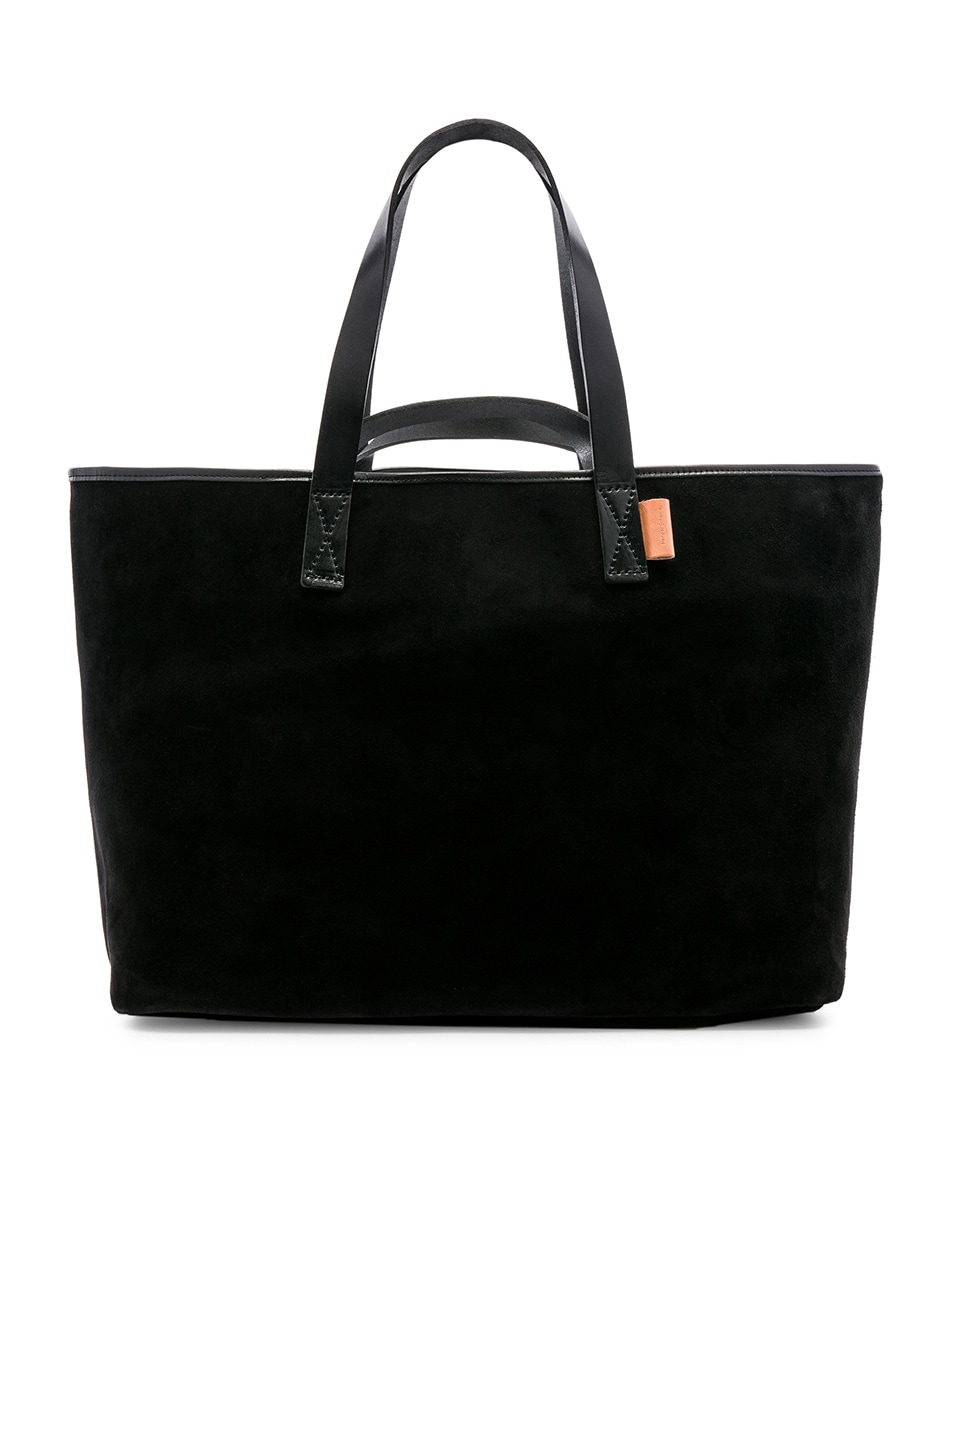 Image 1 of Hender Scheme Leather Tote in Black